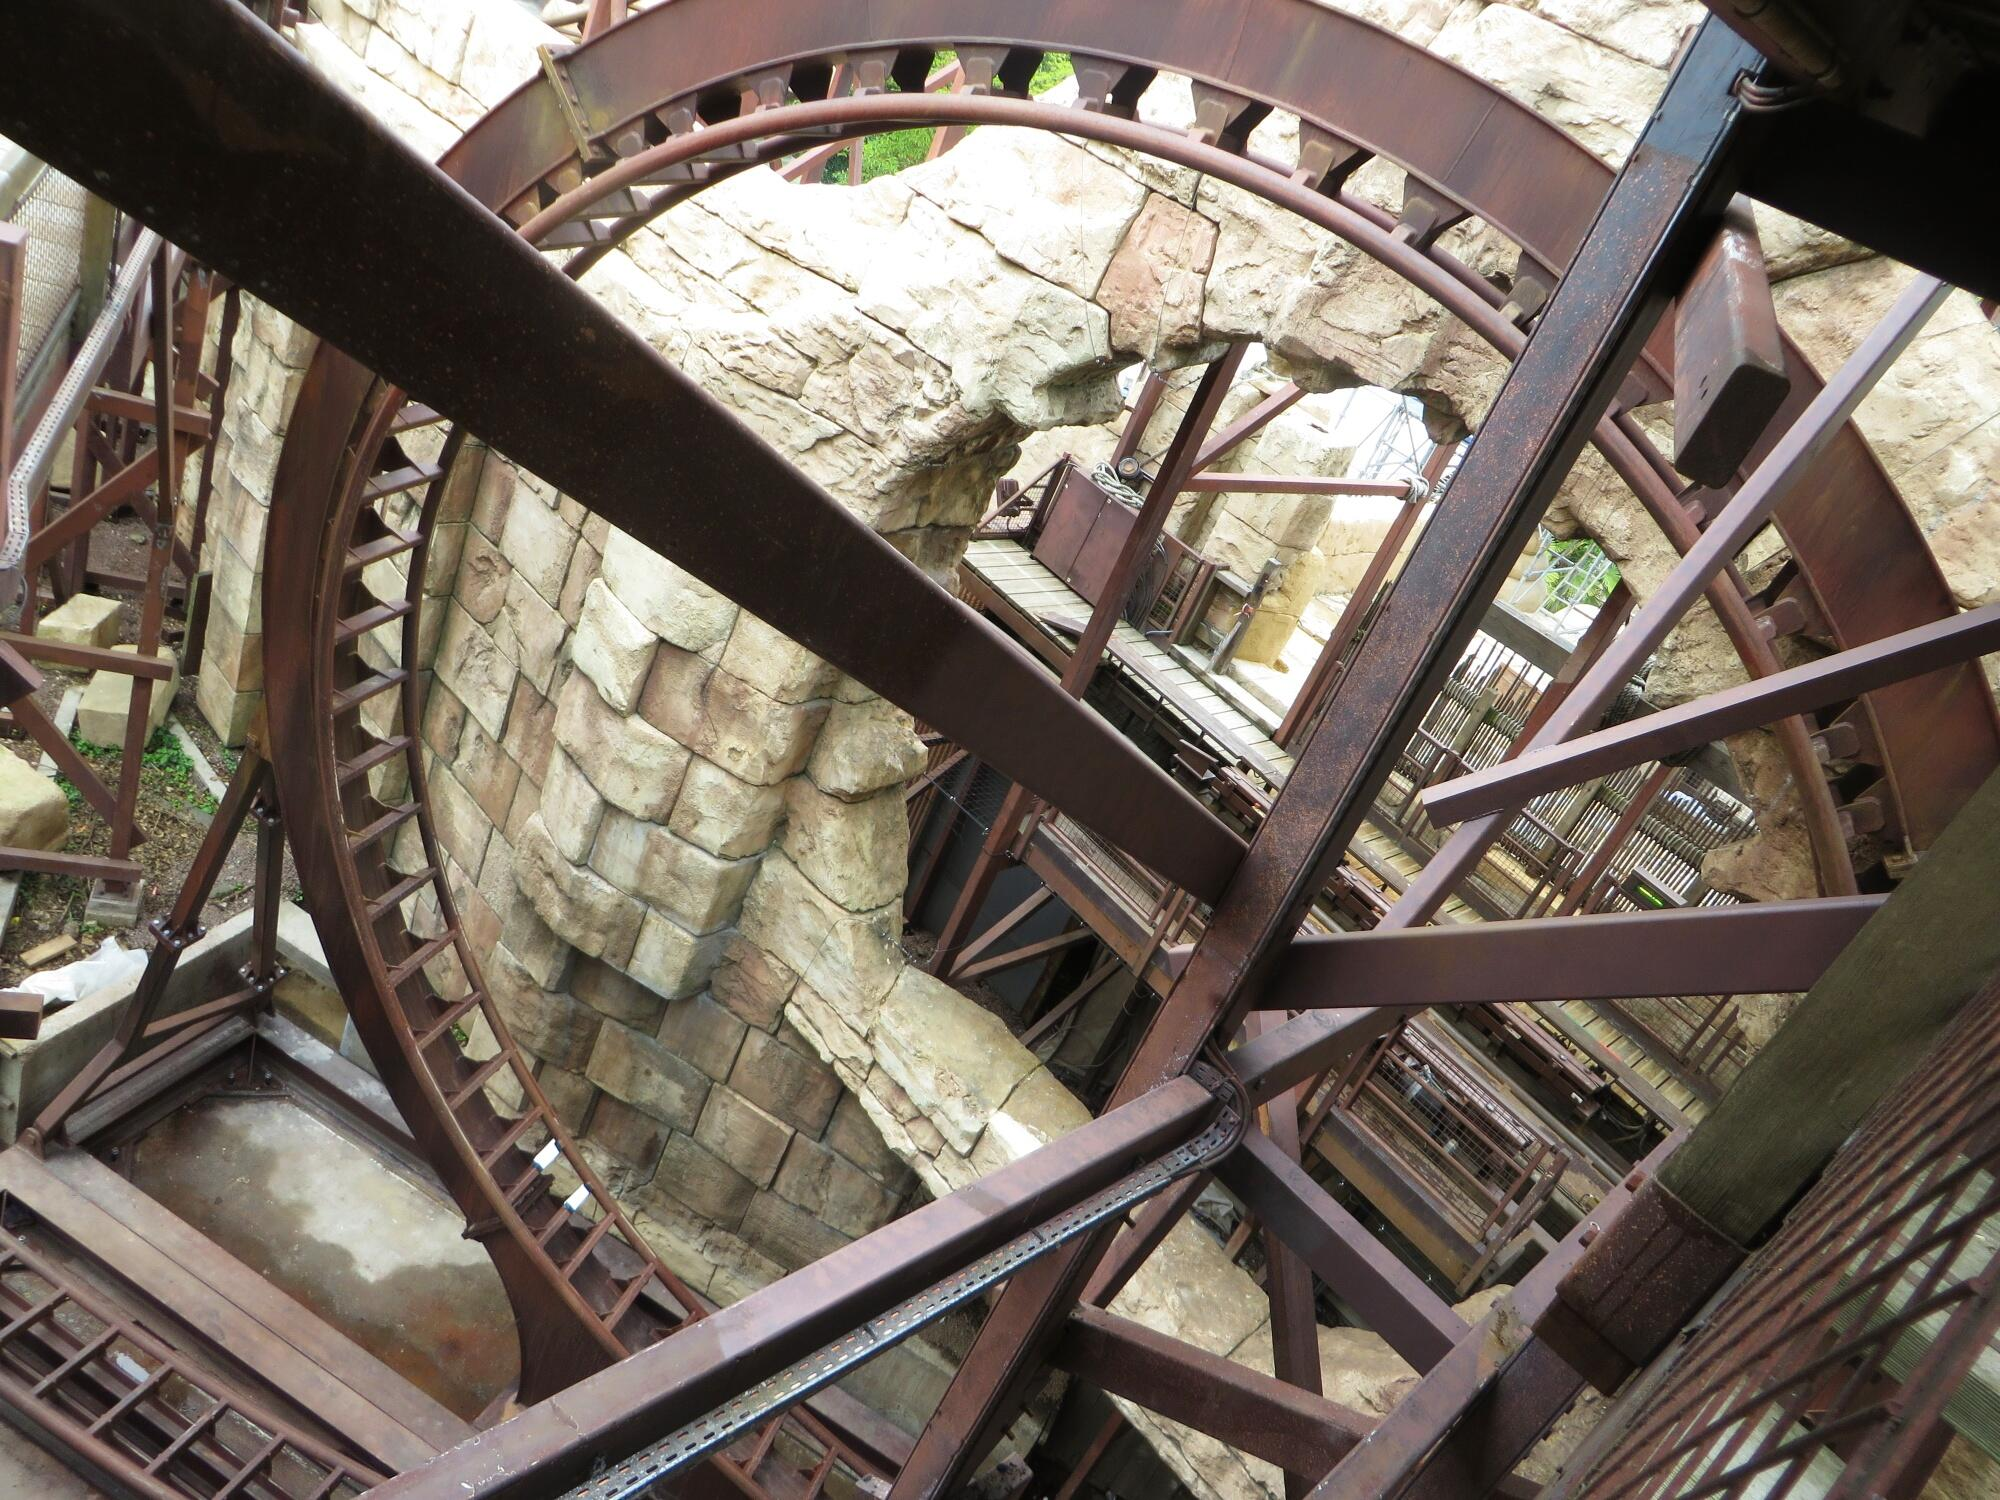 The great new world discussion thread page 103 - We Have Restored The Whole Show Quality To Brand New Condition And Completely Changed The Ride Control And The Loop